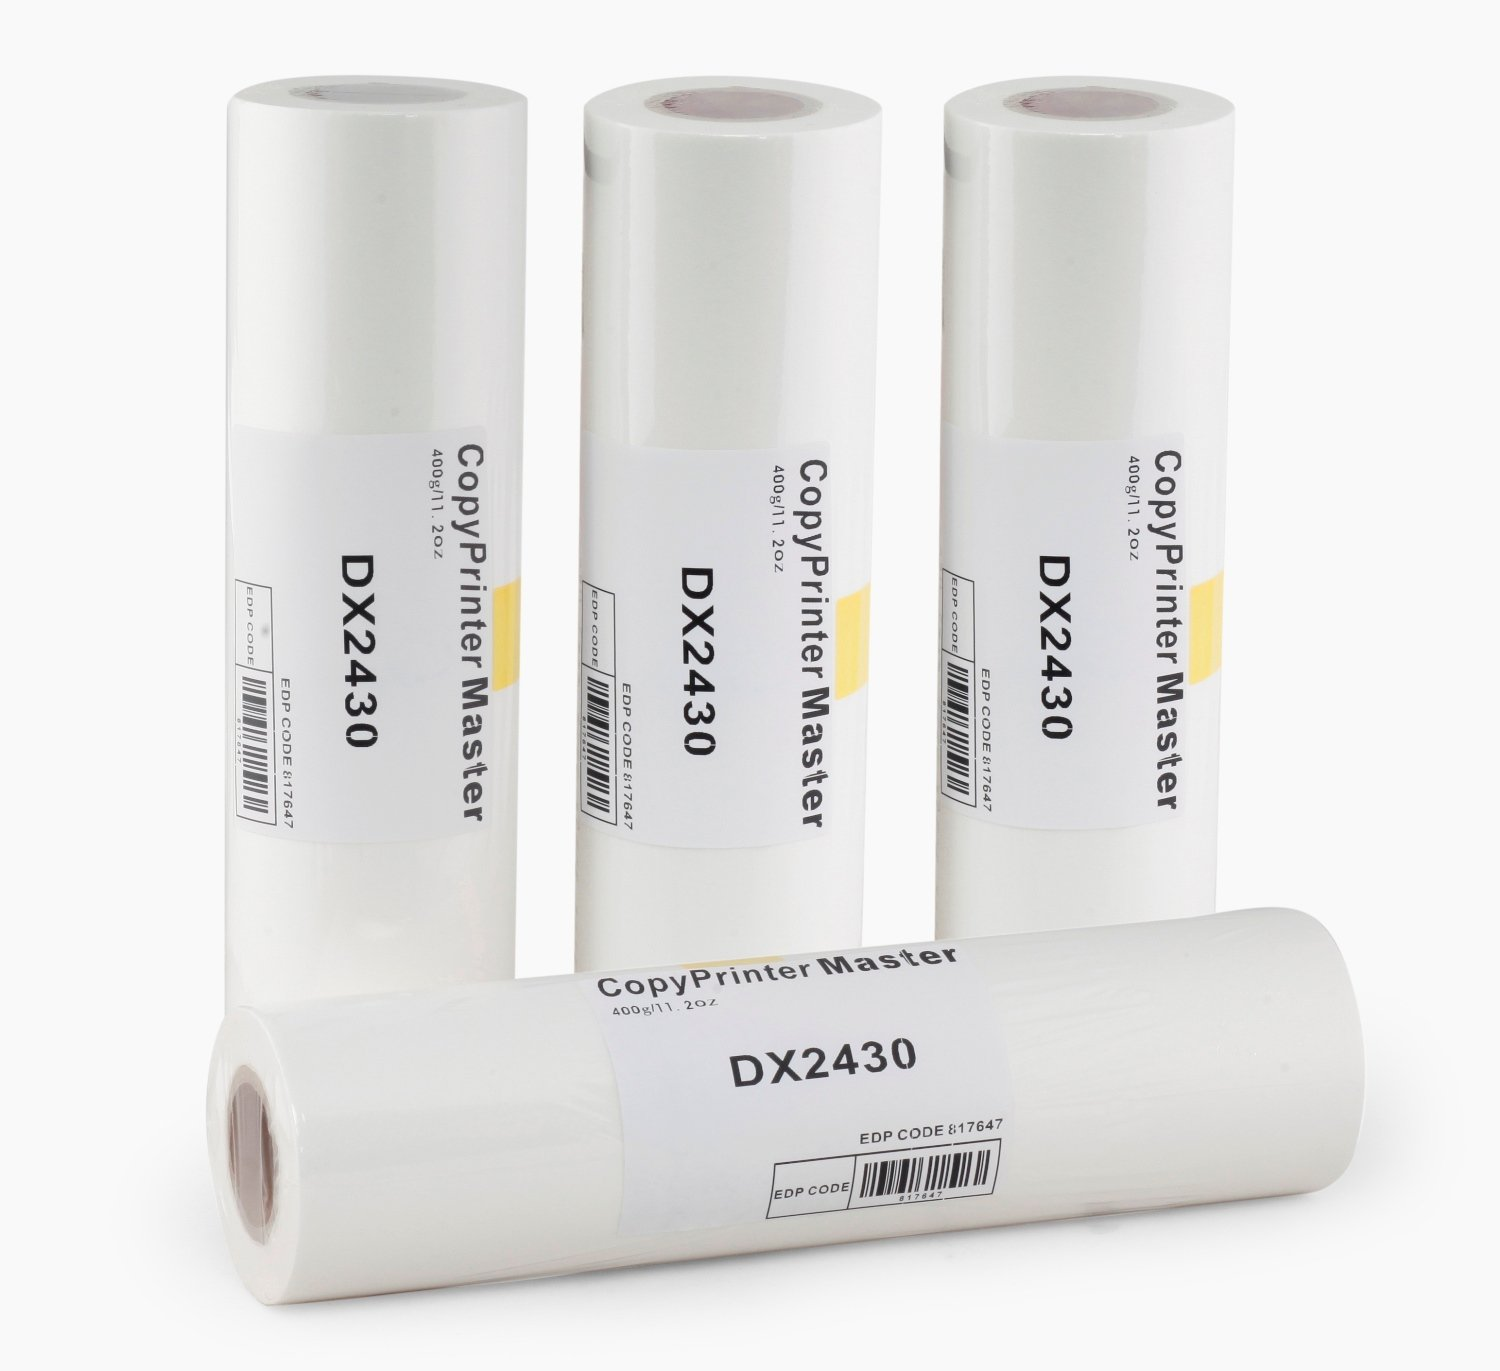 DAIKI DX 2430 B4 Master Roll for Ricoh Copy Printer (White) - Pack of 4  Rolls per Box